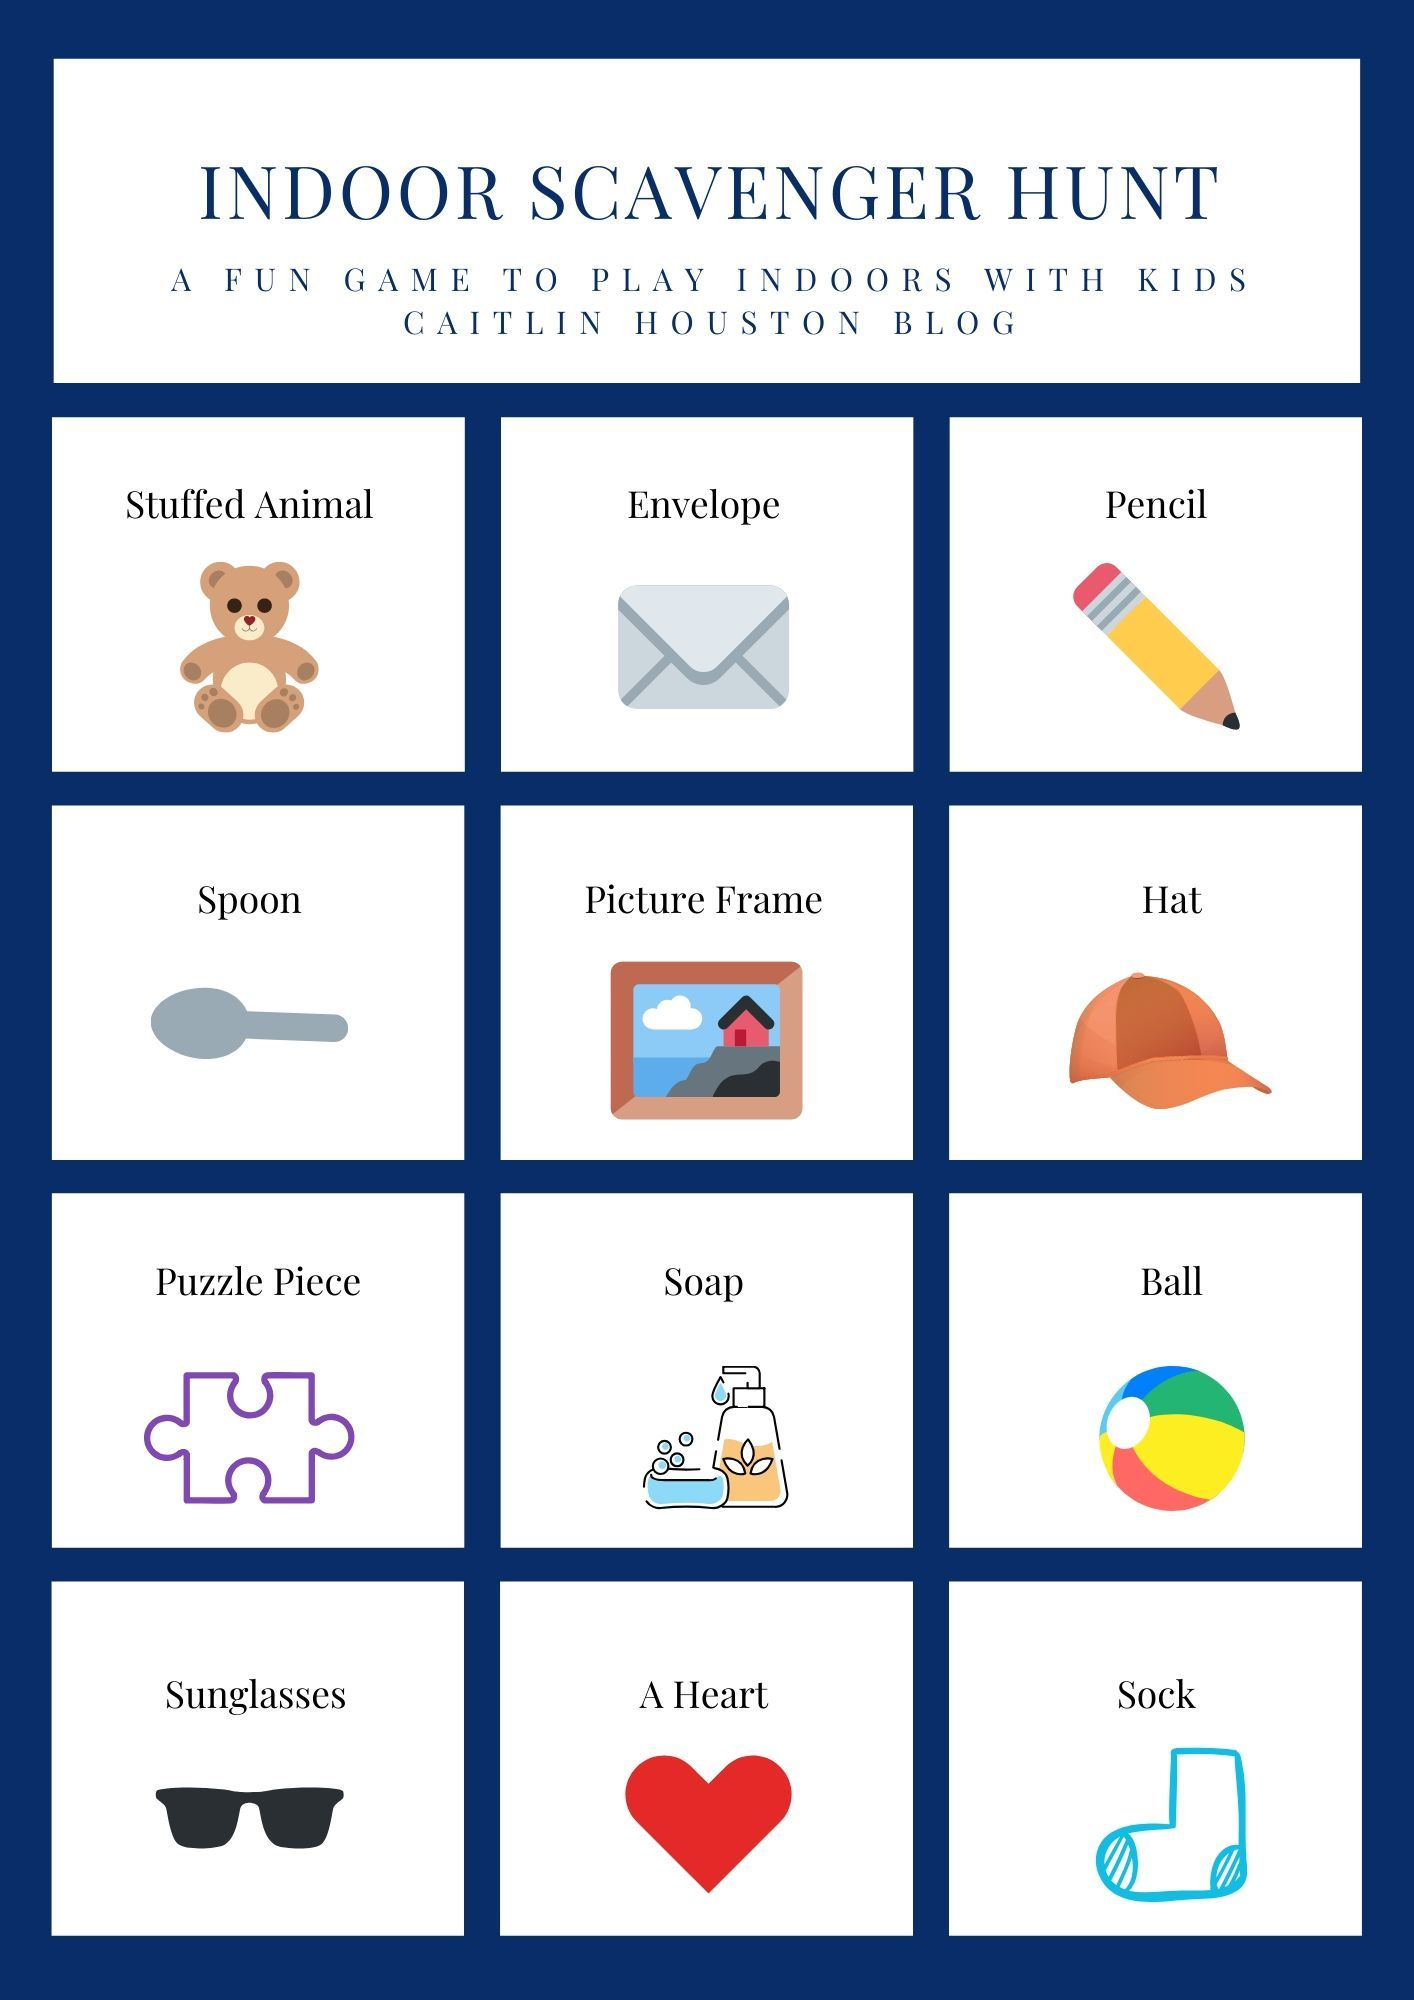 Pin on activities for kids